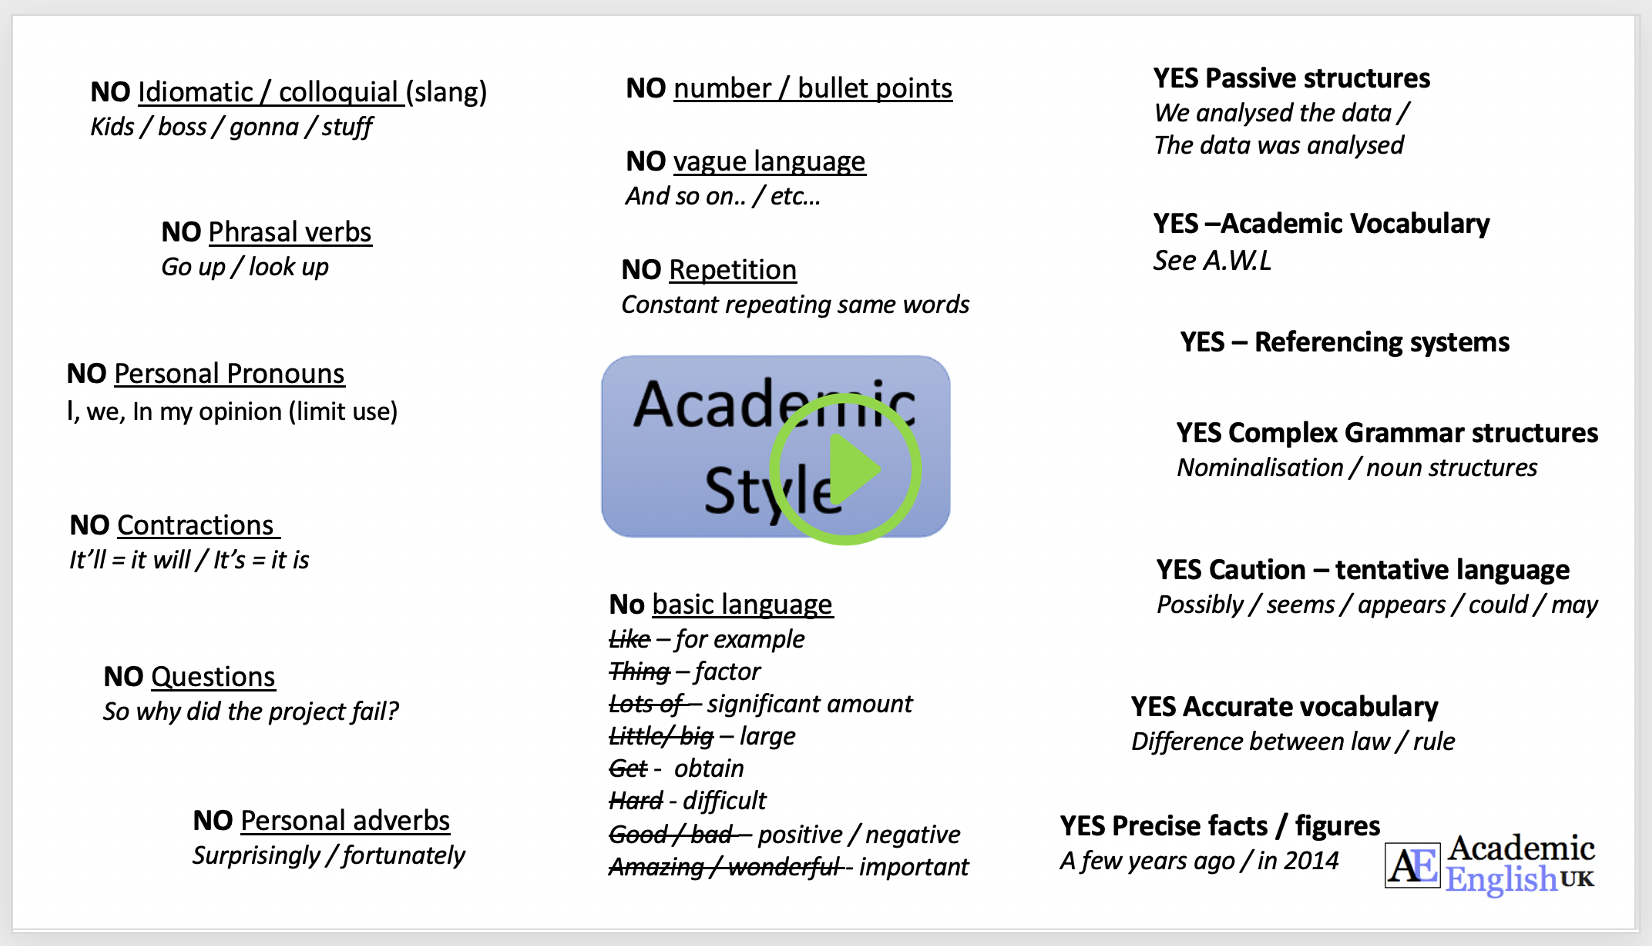 academic style by AEUK